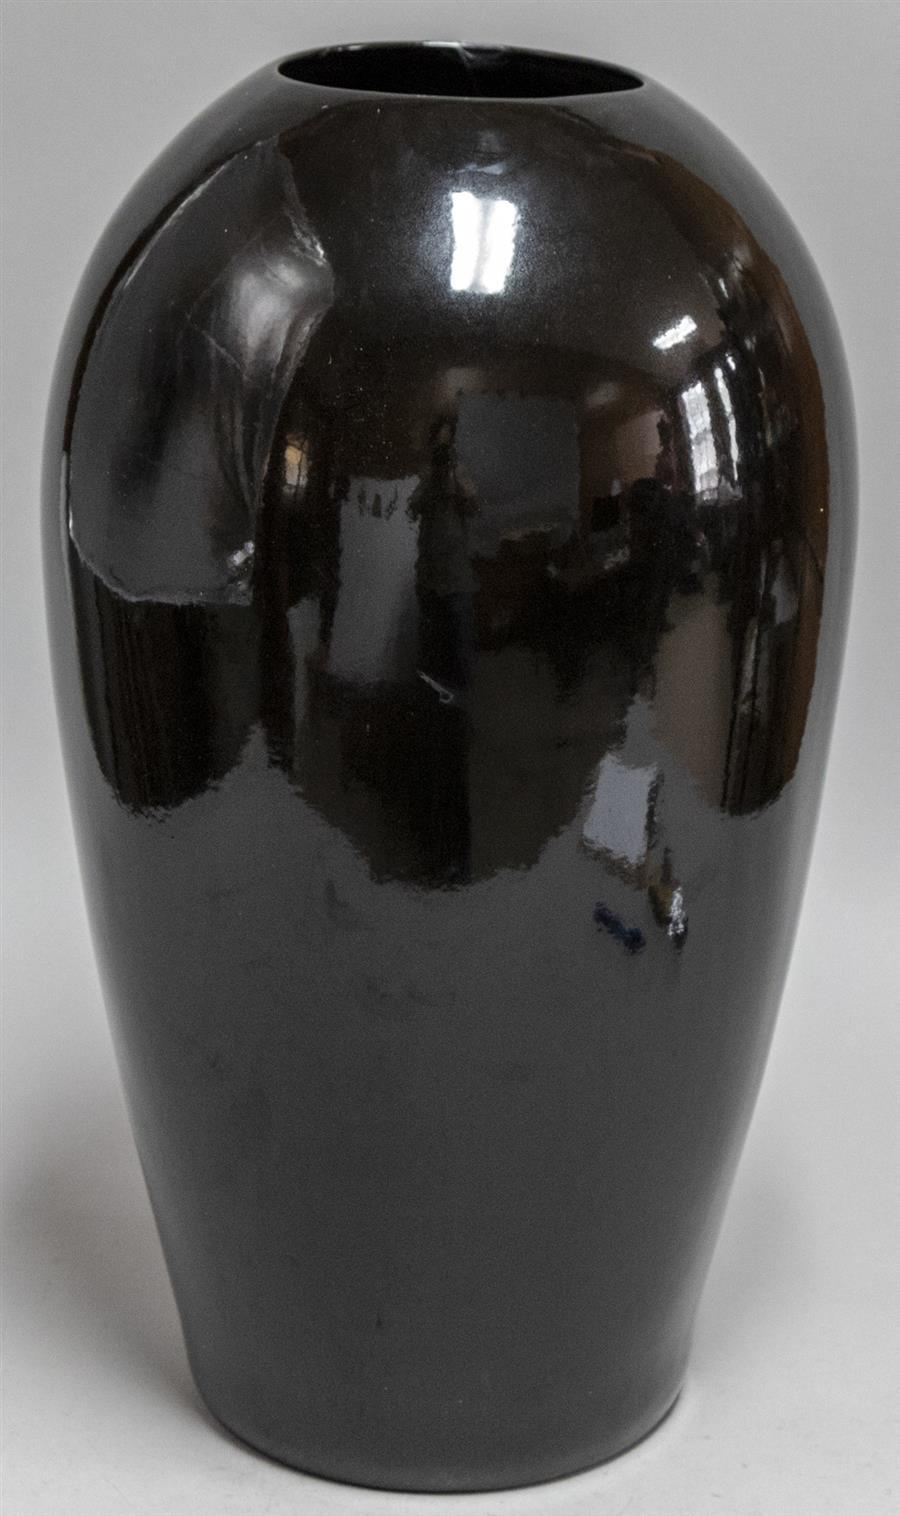 Large black vase (height: 23 inches)